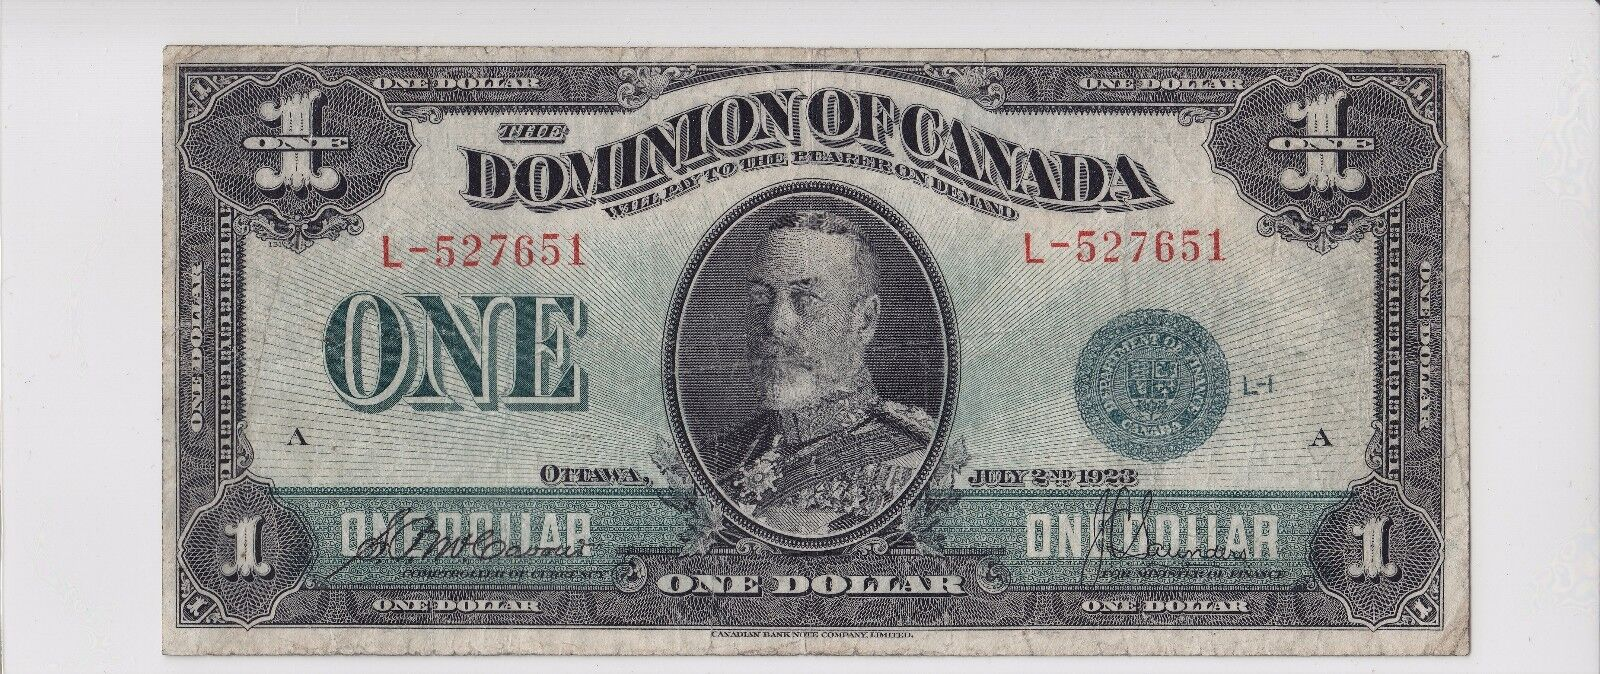 1923 Dominion of Canada $1 Large Sized Bank Note DC25-d L-527651